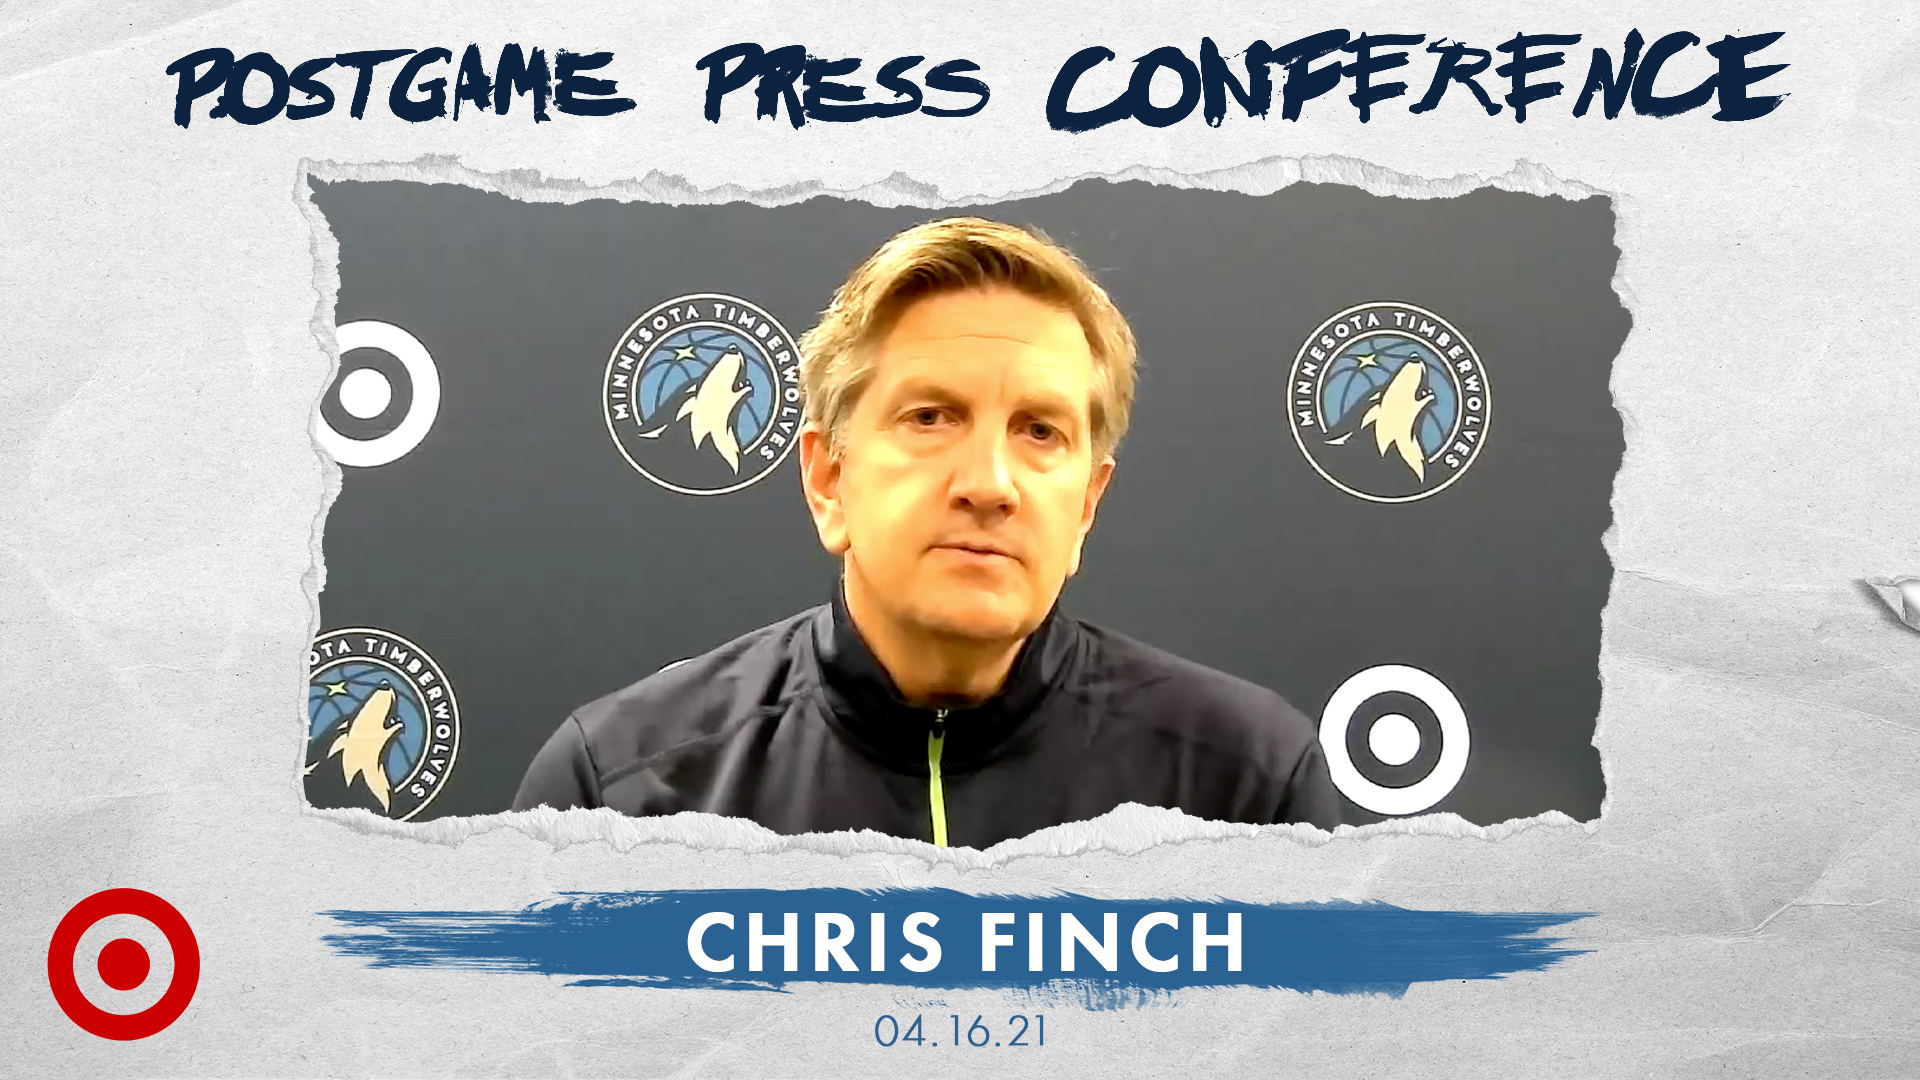 Chris Finch Postgame Press Conference - April 16, 2021